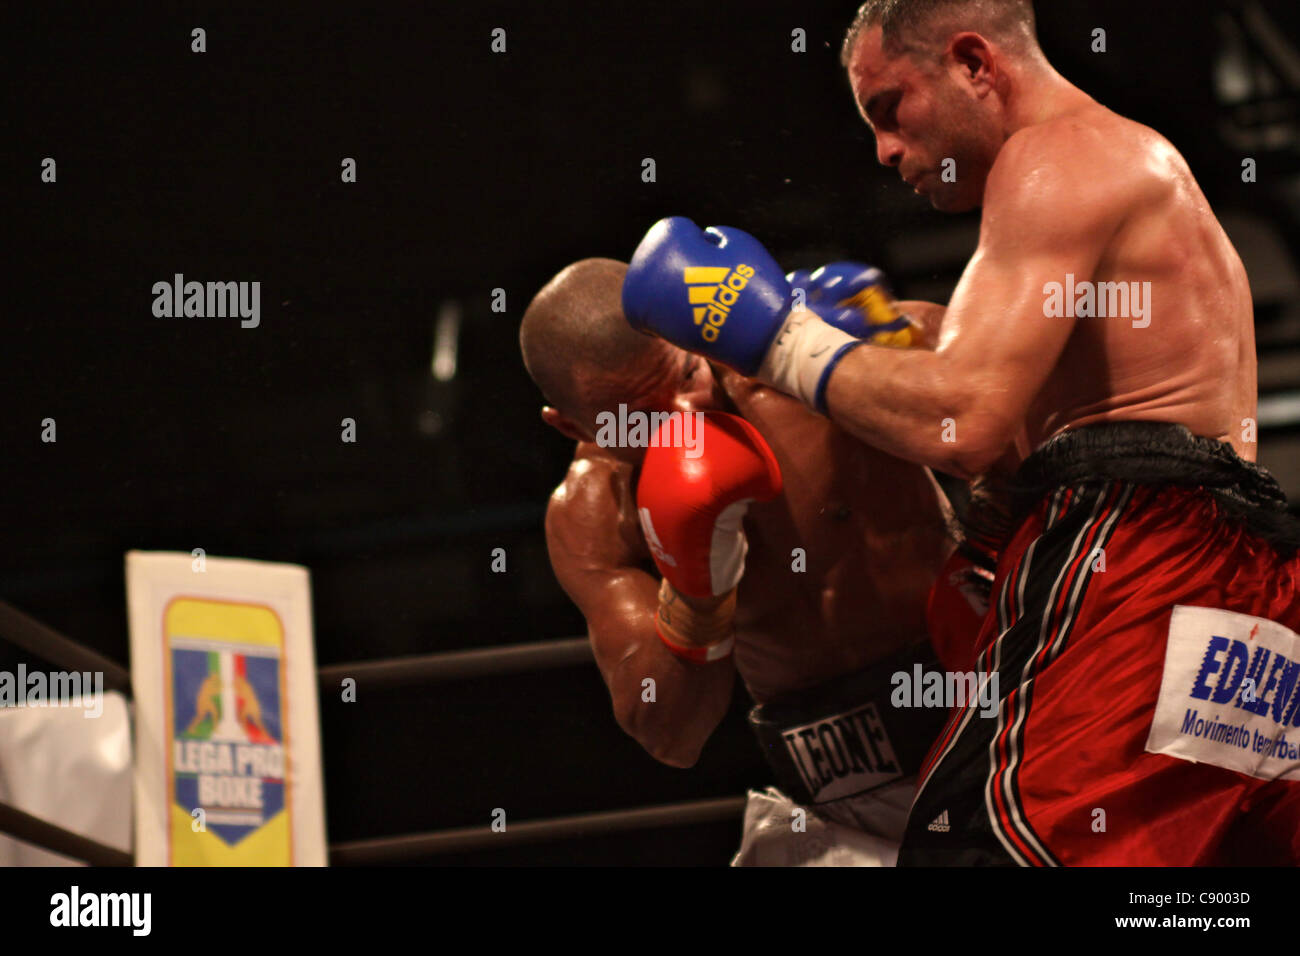 FLORENCE (IT), 04/Nov/2011: Bundu VS Petrucci, Welter Weight Boxing European Title @ Mandela Forum - Petrucci and - Stock Image